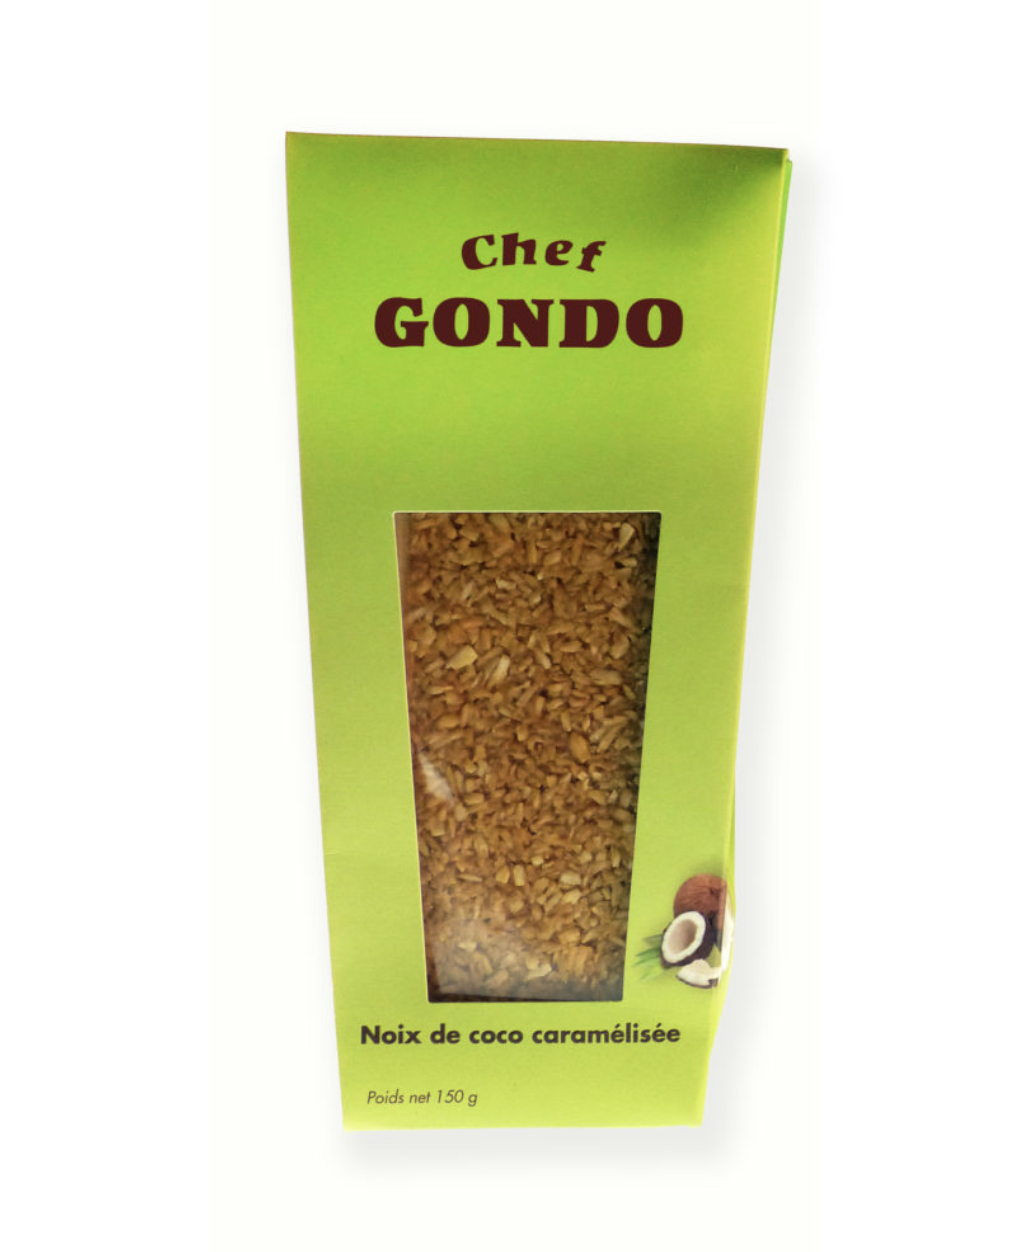 - COCO CARAMELISEE - CHEF GONDO